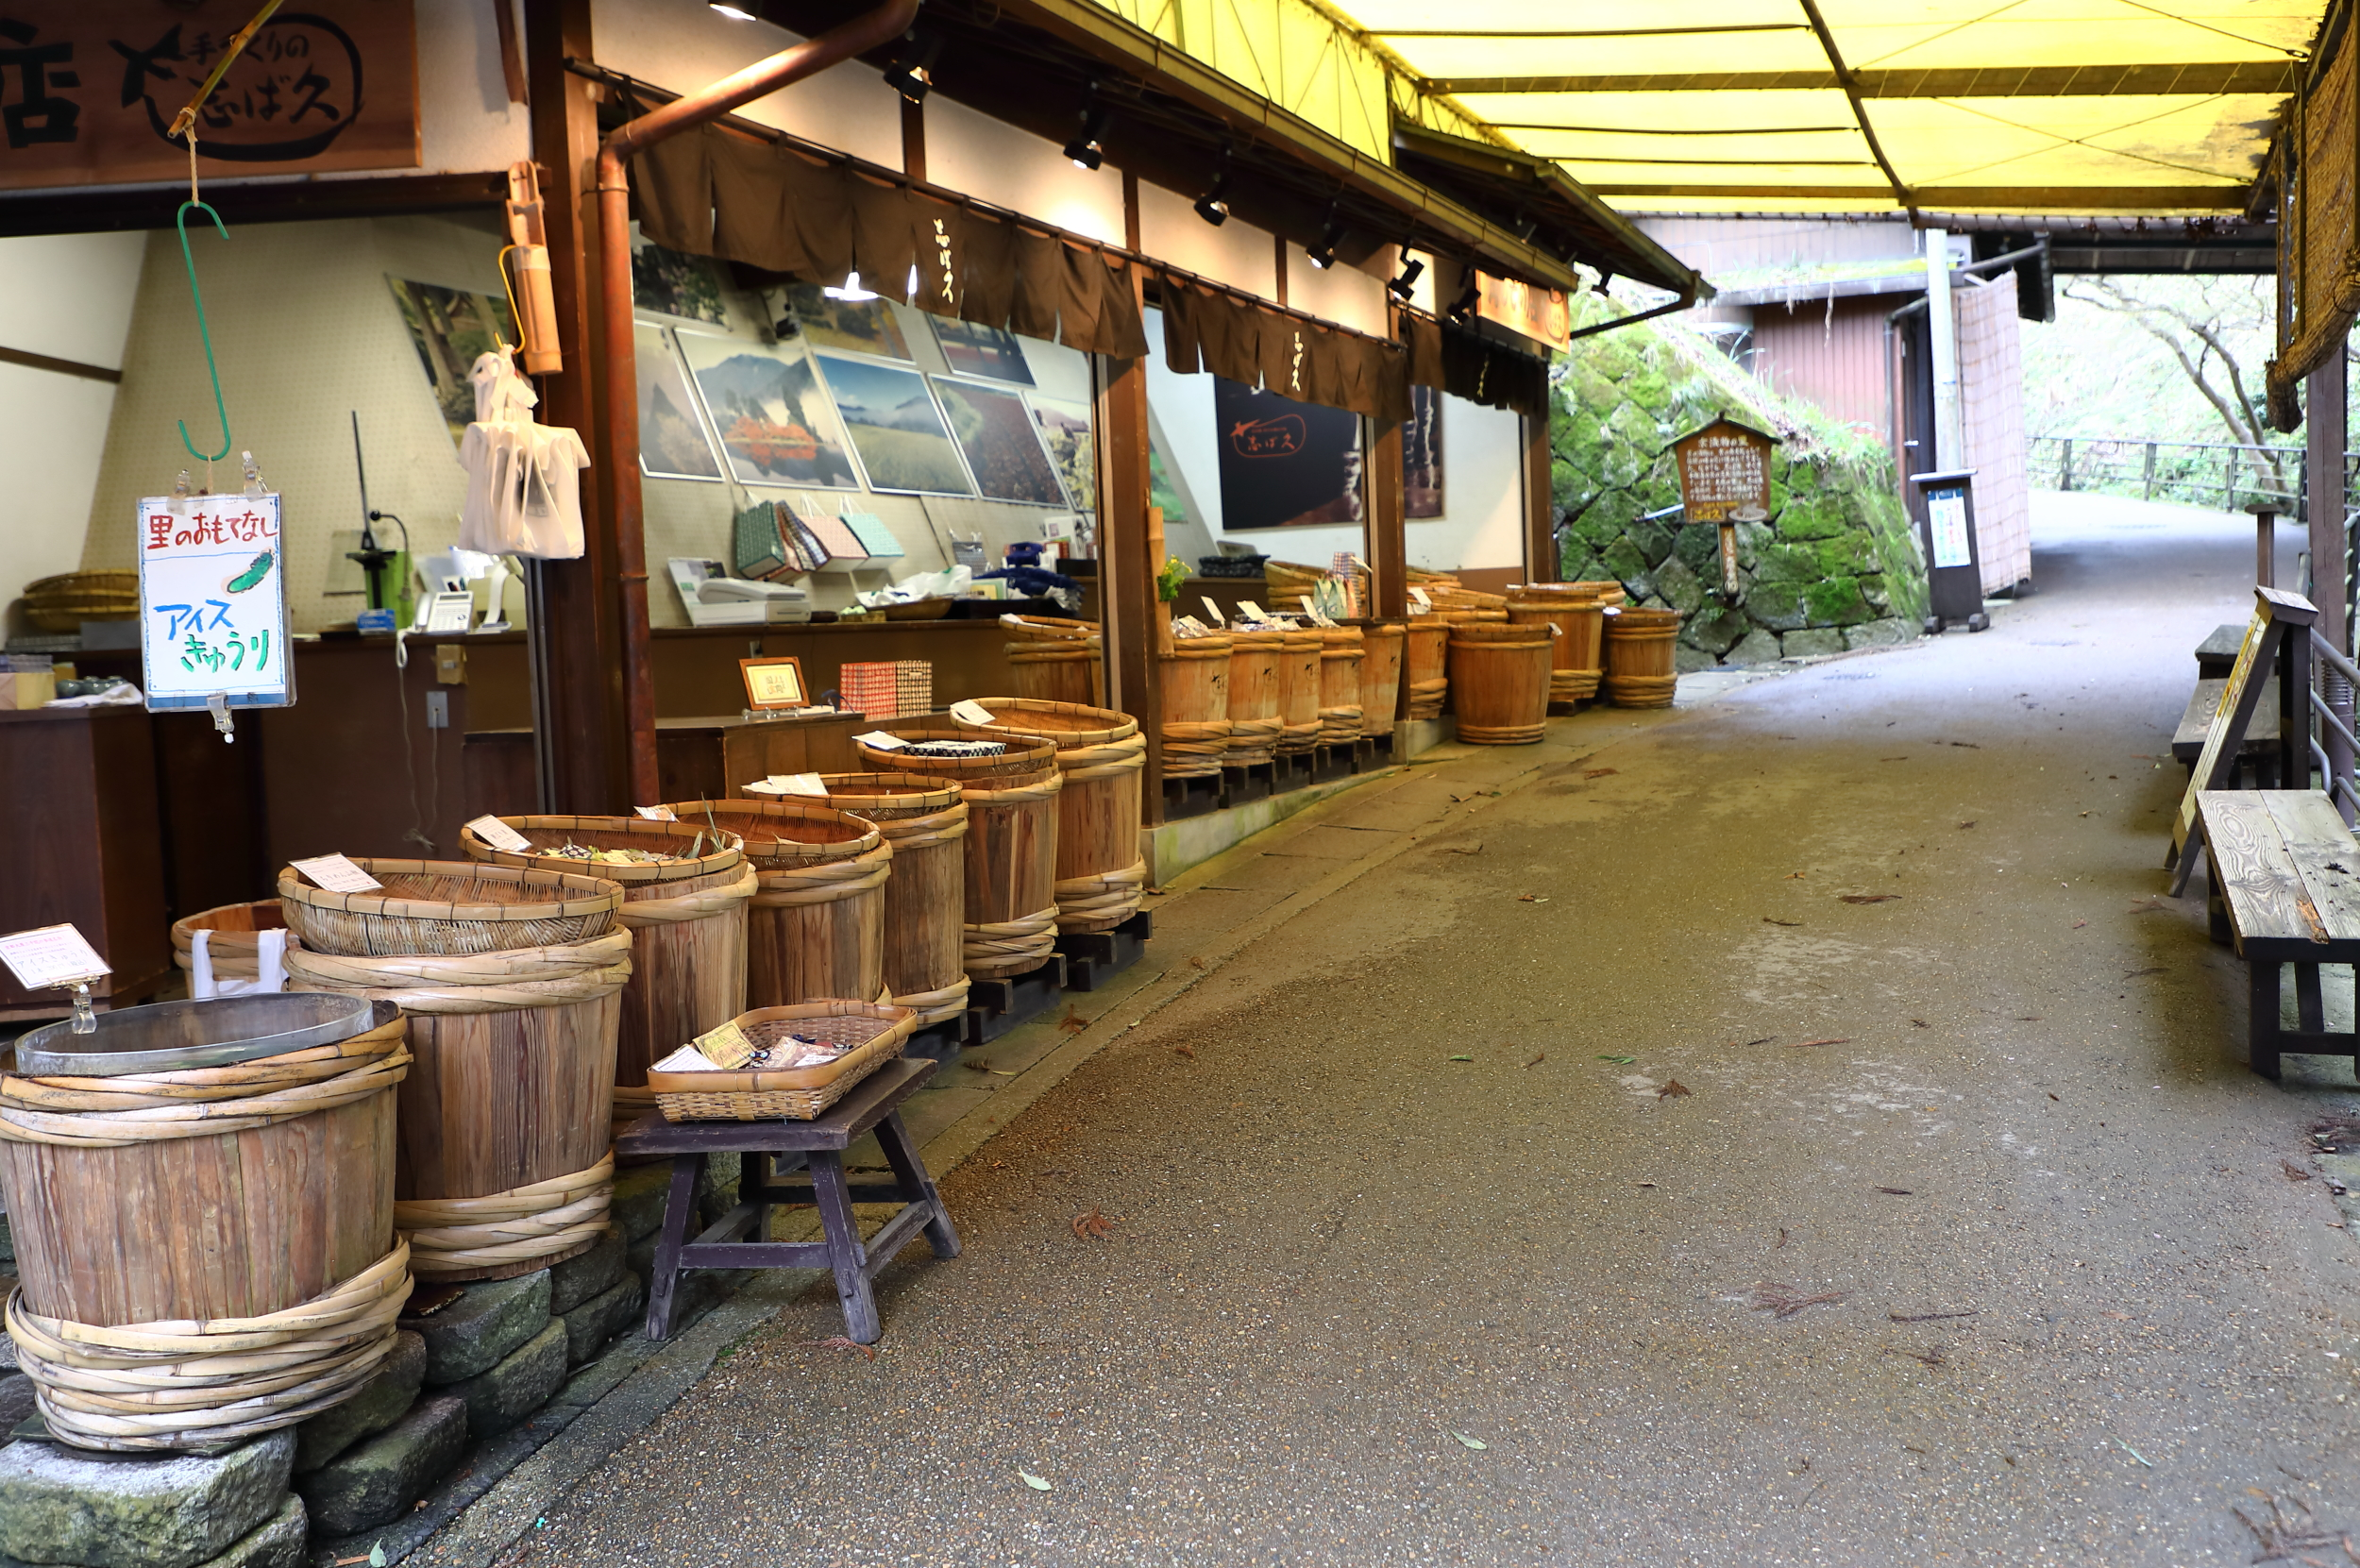 The outdoor stall of Shibakyu's main shop borders the pilgrim's route to Sanzen-in Temple in Ohara.